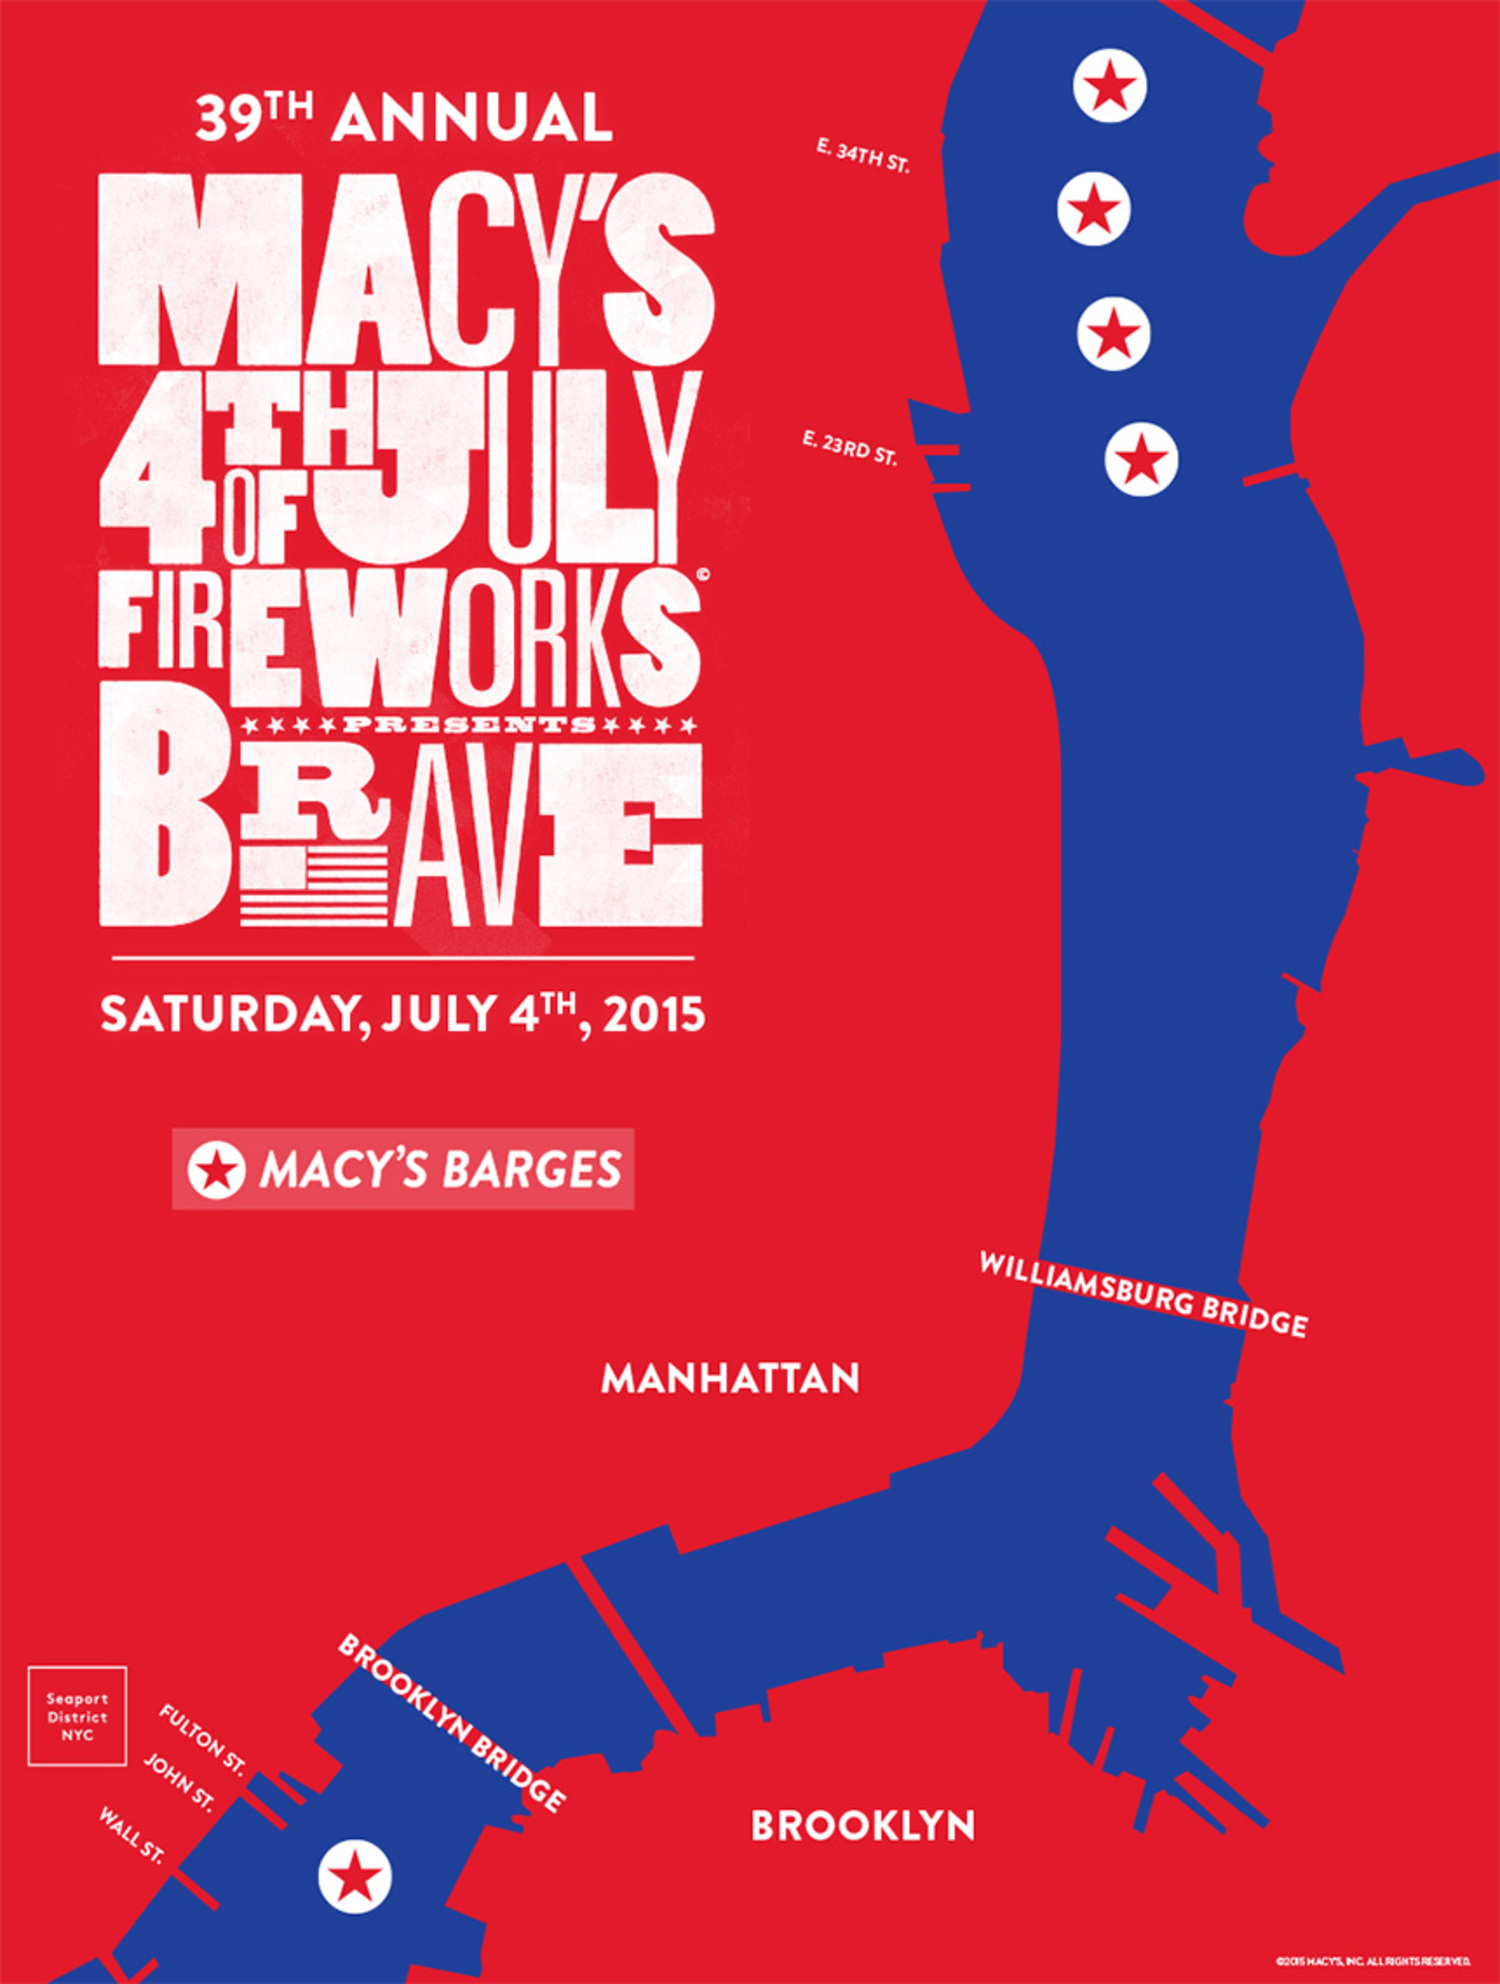 39th Annual Macy's 4th of July Fireworks